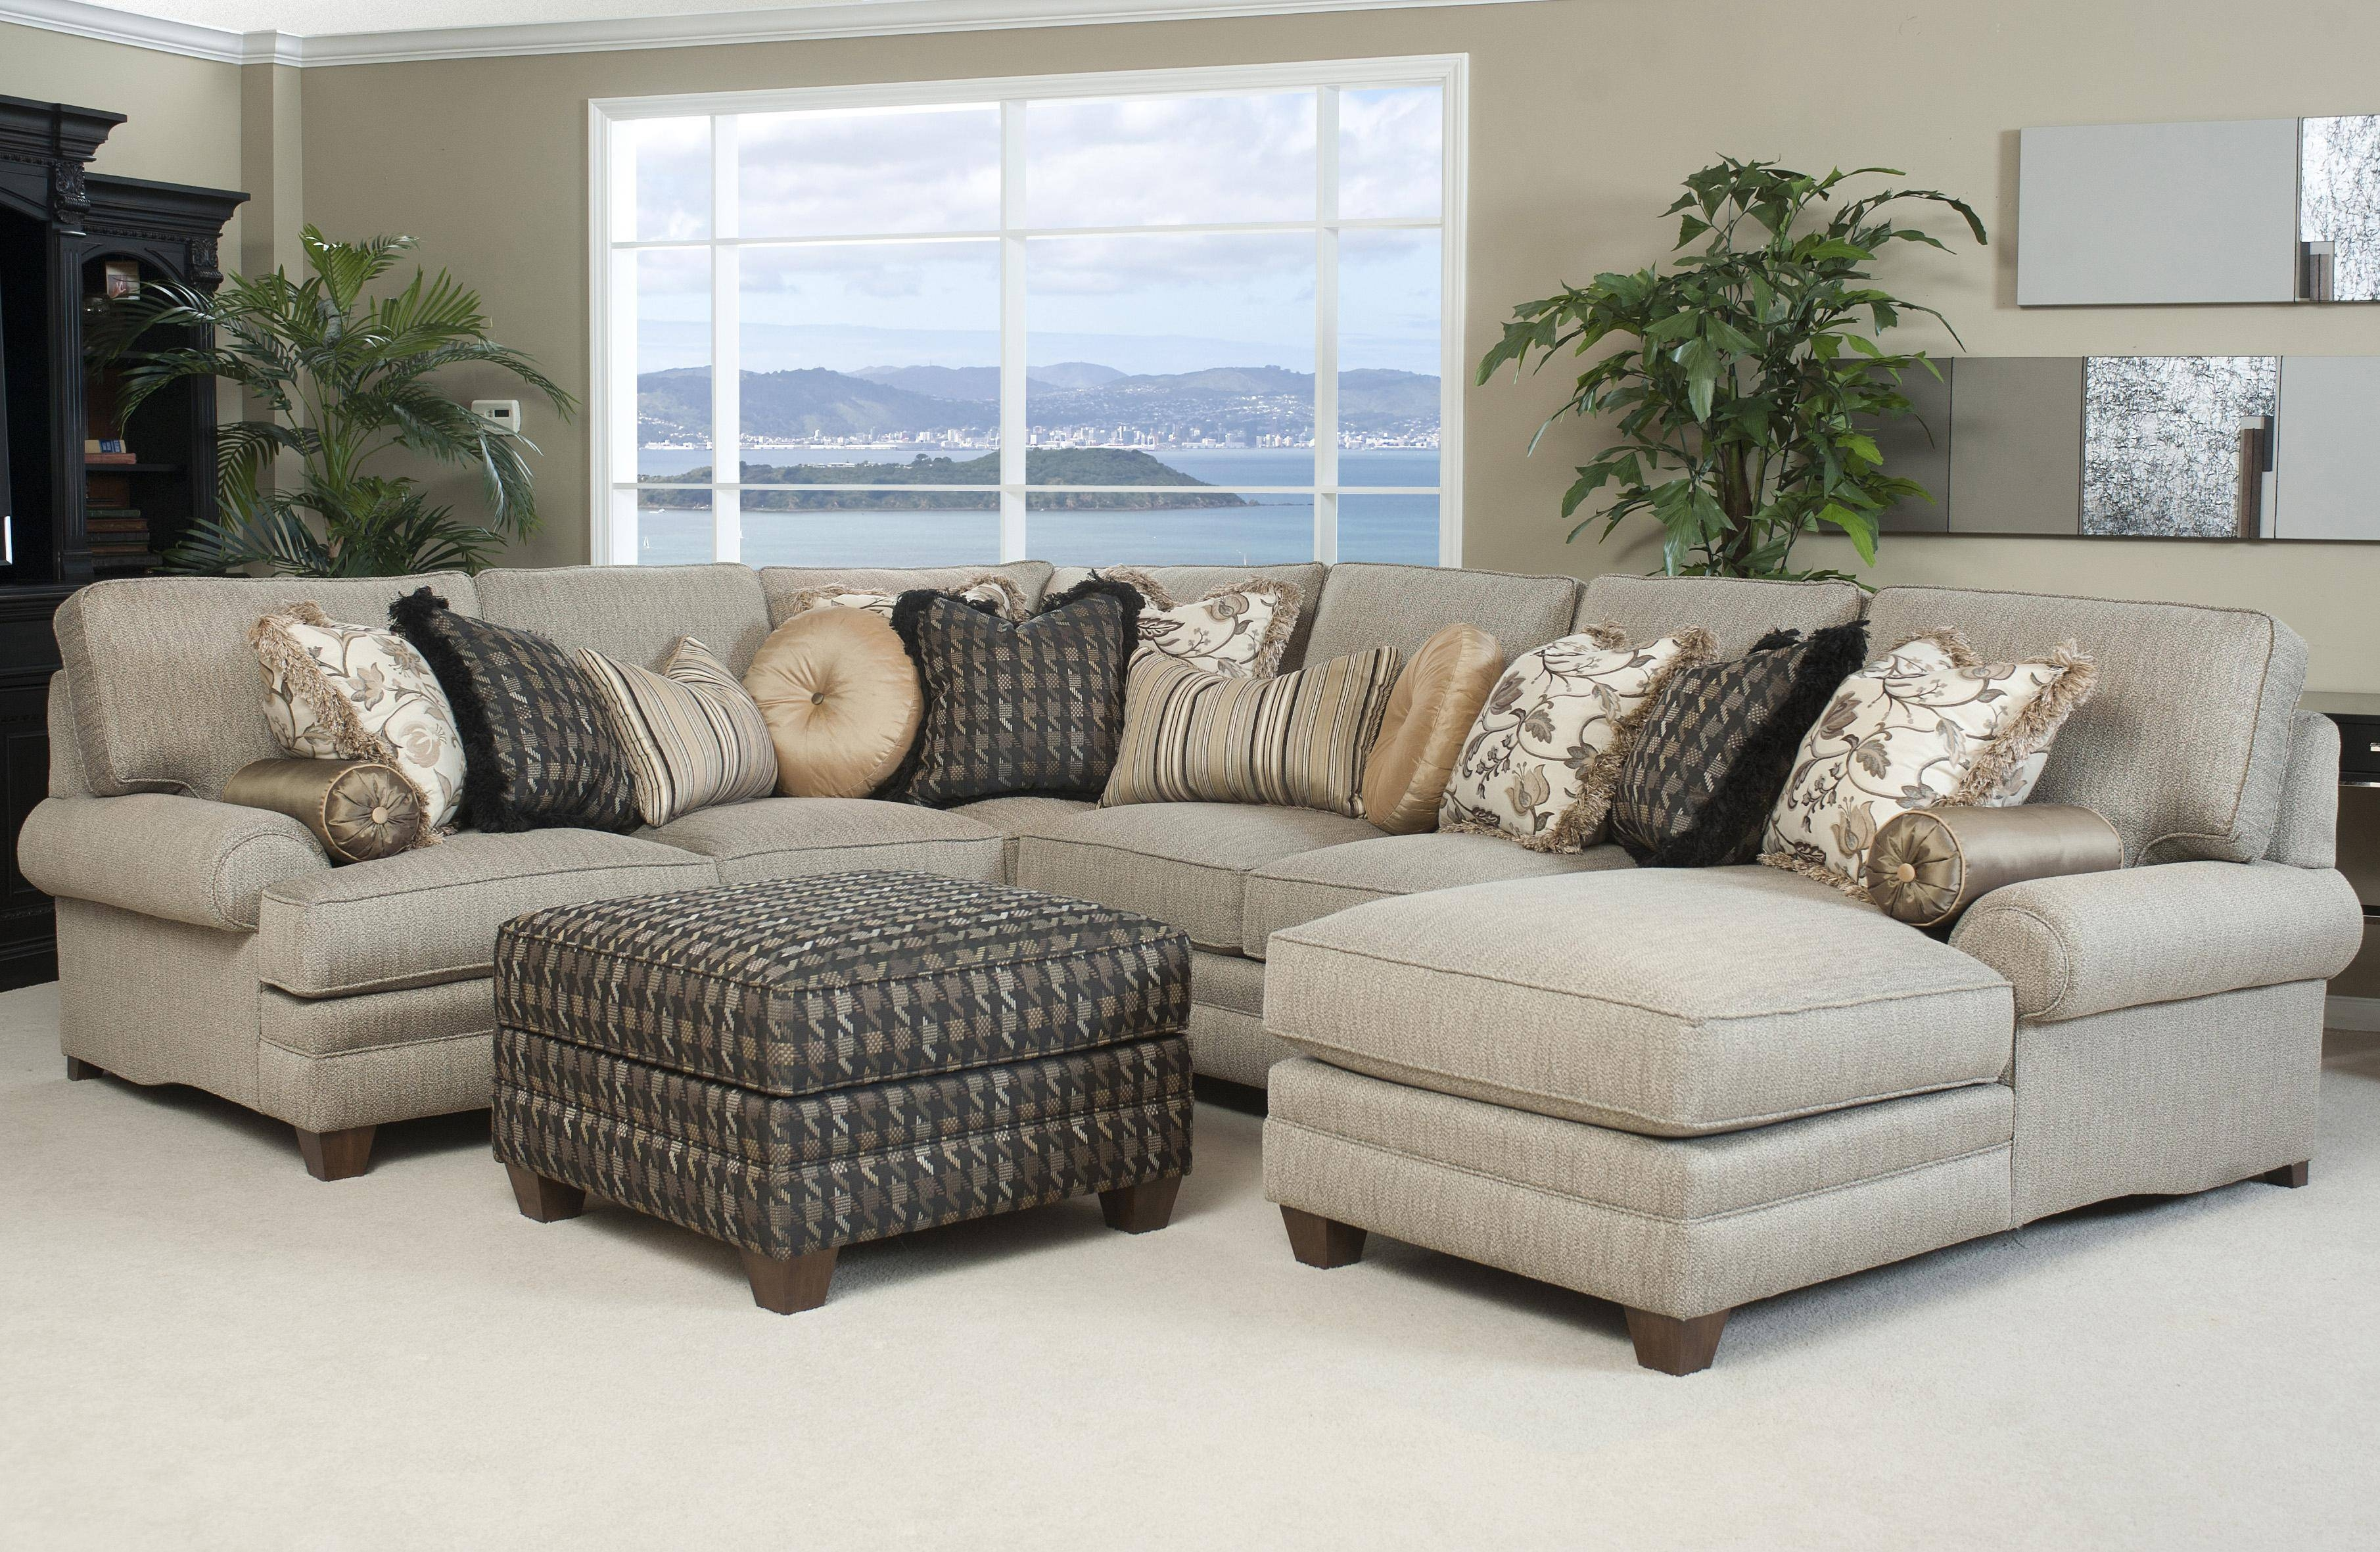 traditional styled sectional sofa with comfortable pillowed seat intended  for comfortable sofas and chairs (photo 1QKWTZ6I